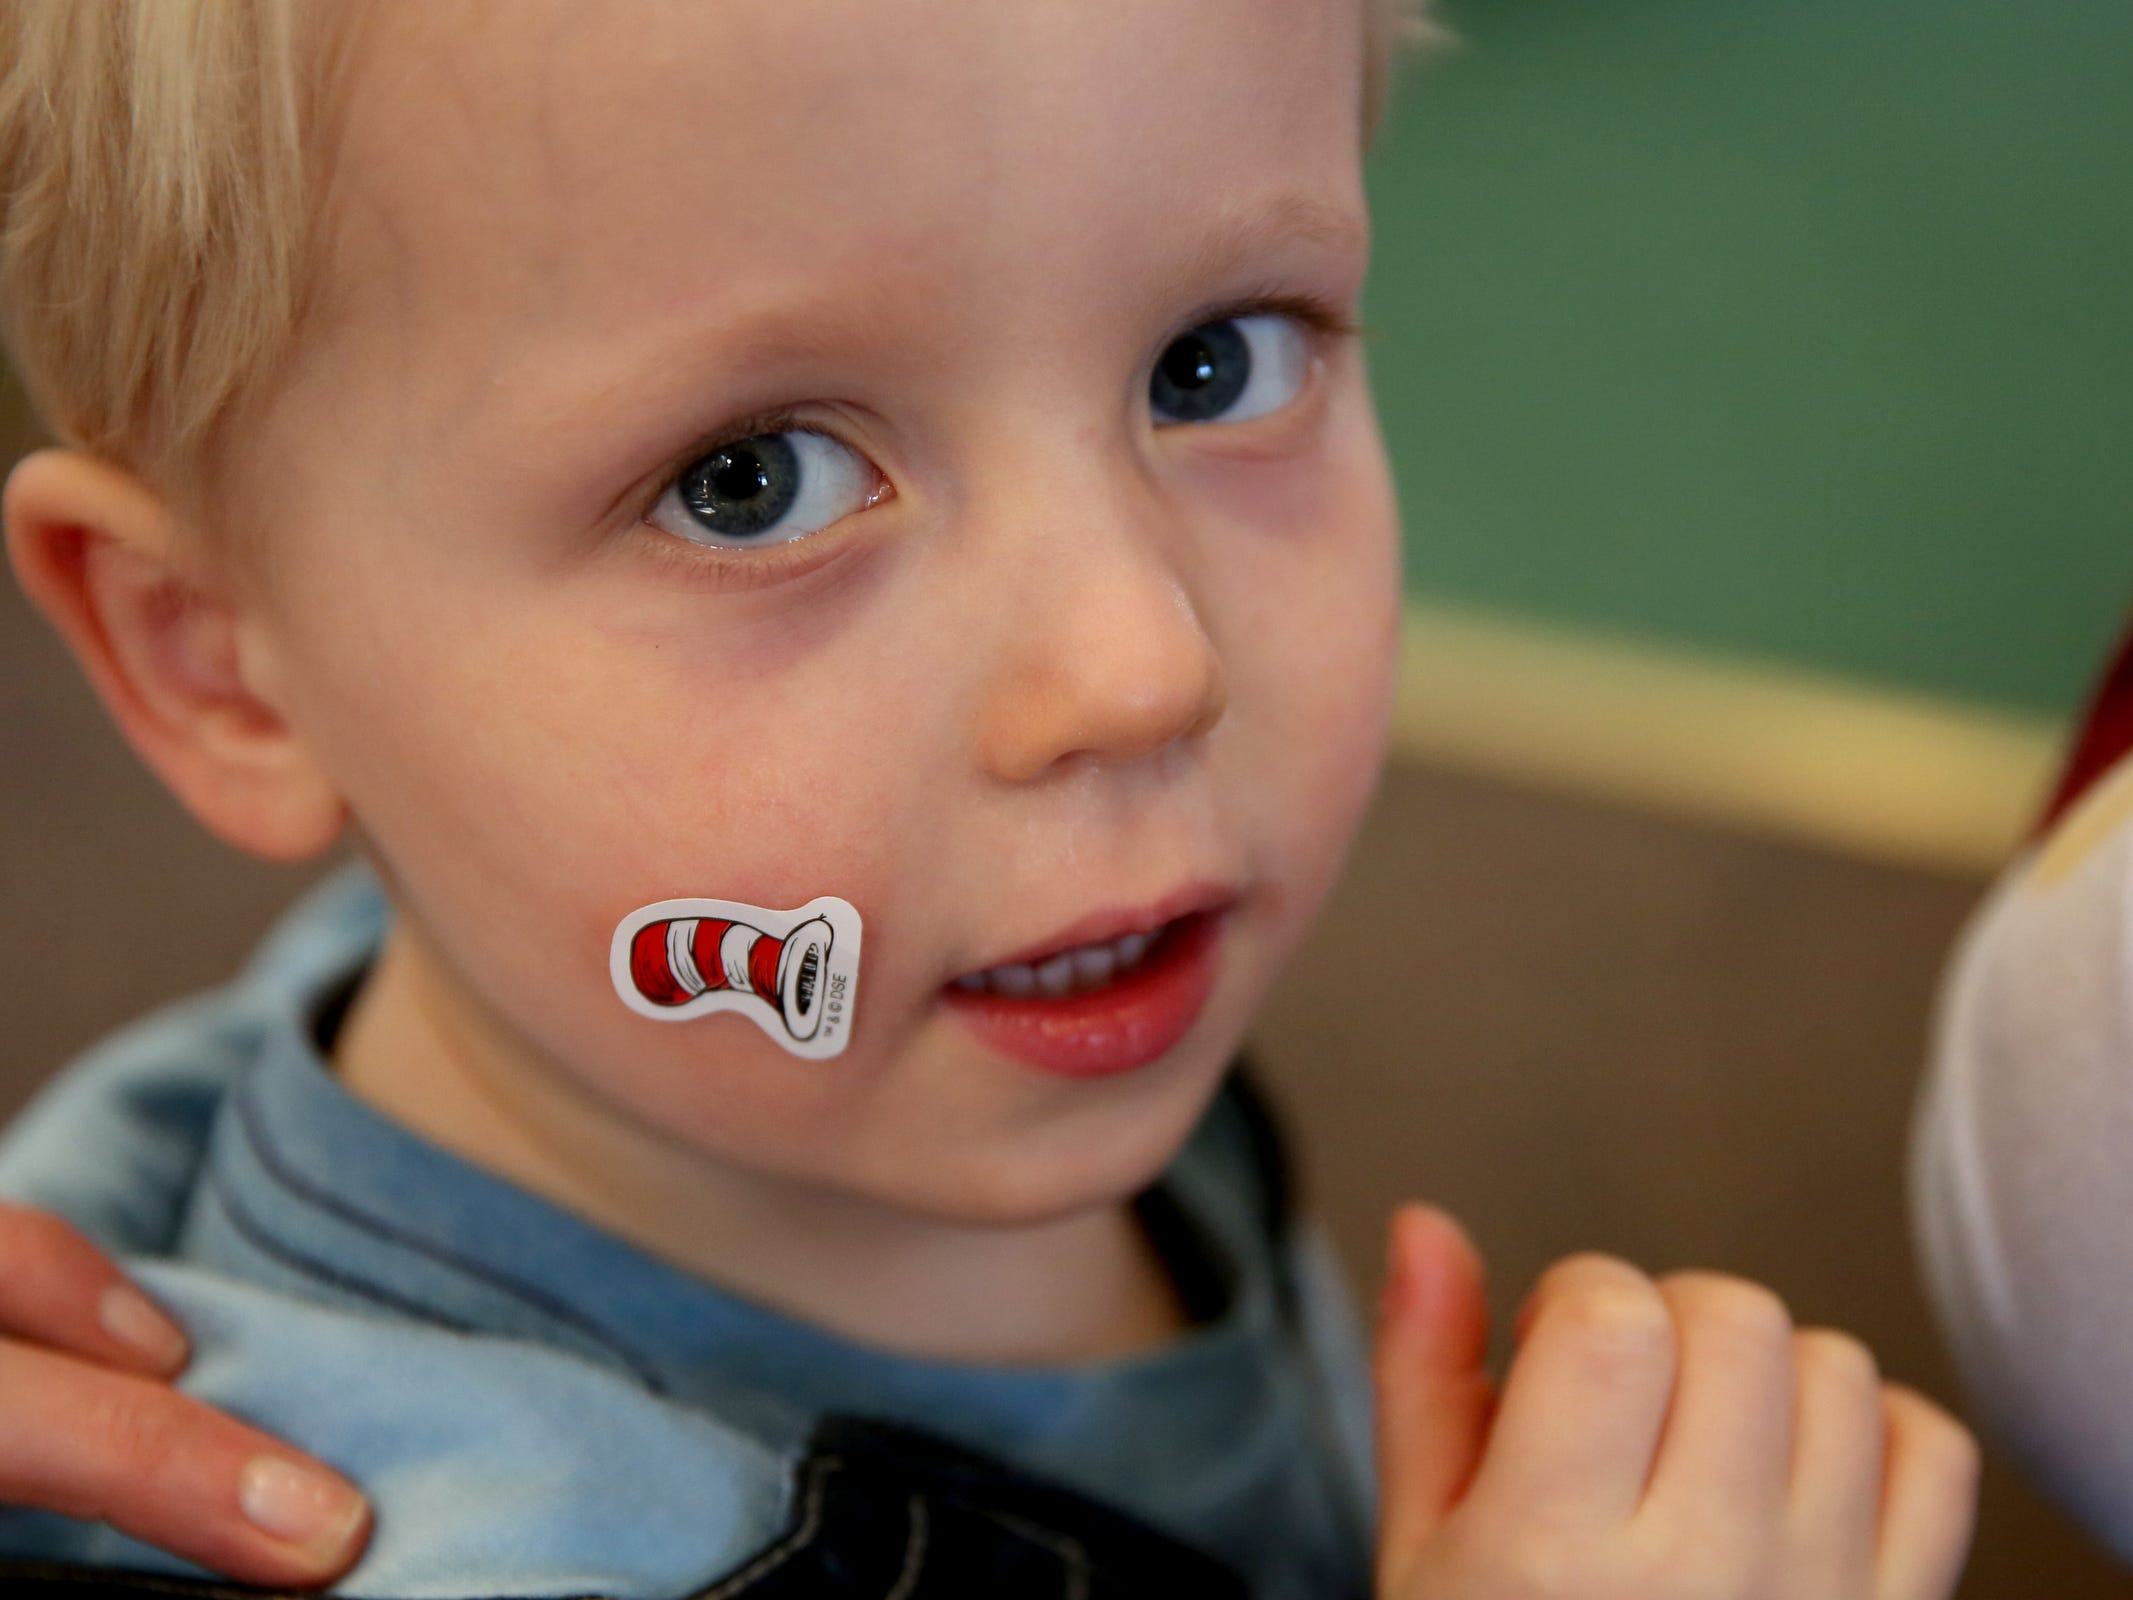 Caleb Joslin, 4, of Salem, wears a Cat in the Hat sticker as part of a National Read Across America Day activity in honor of Dr. Seuss' birthday at Gilbert House Children's Museum in Salem  on Friday, March 1, 2019.